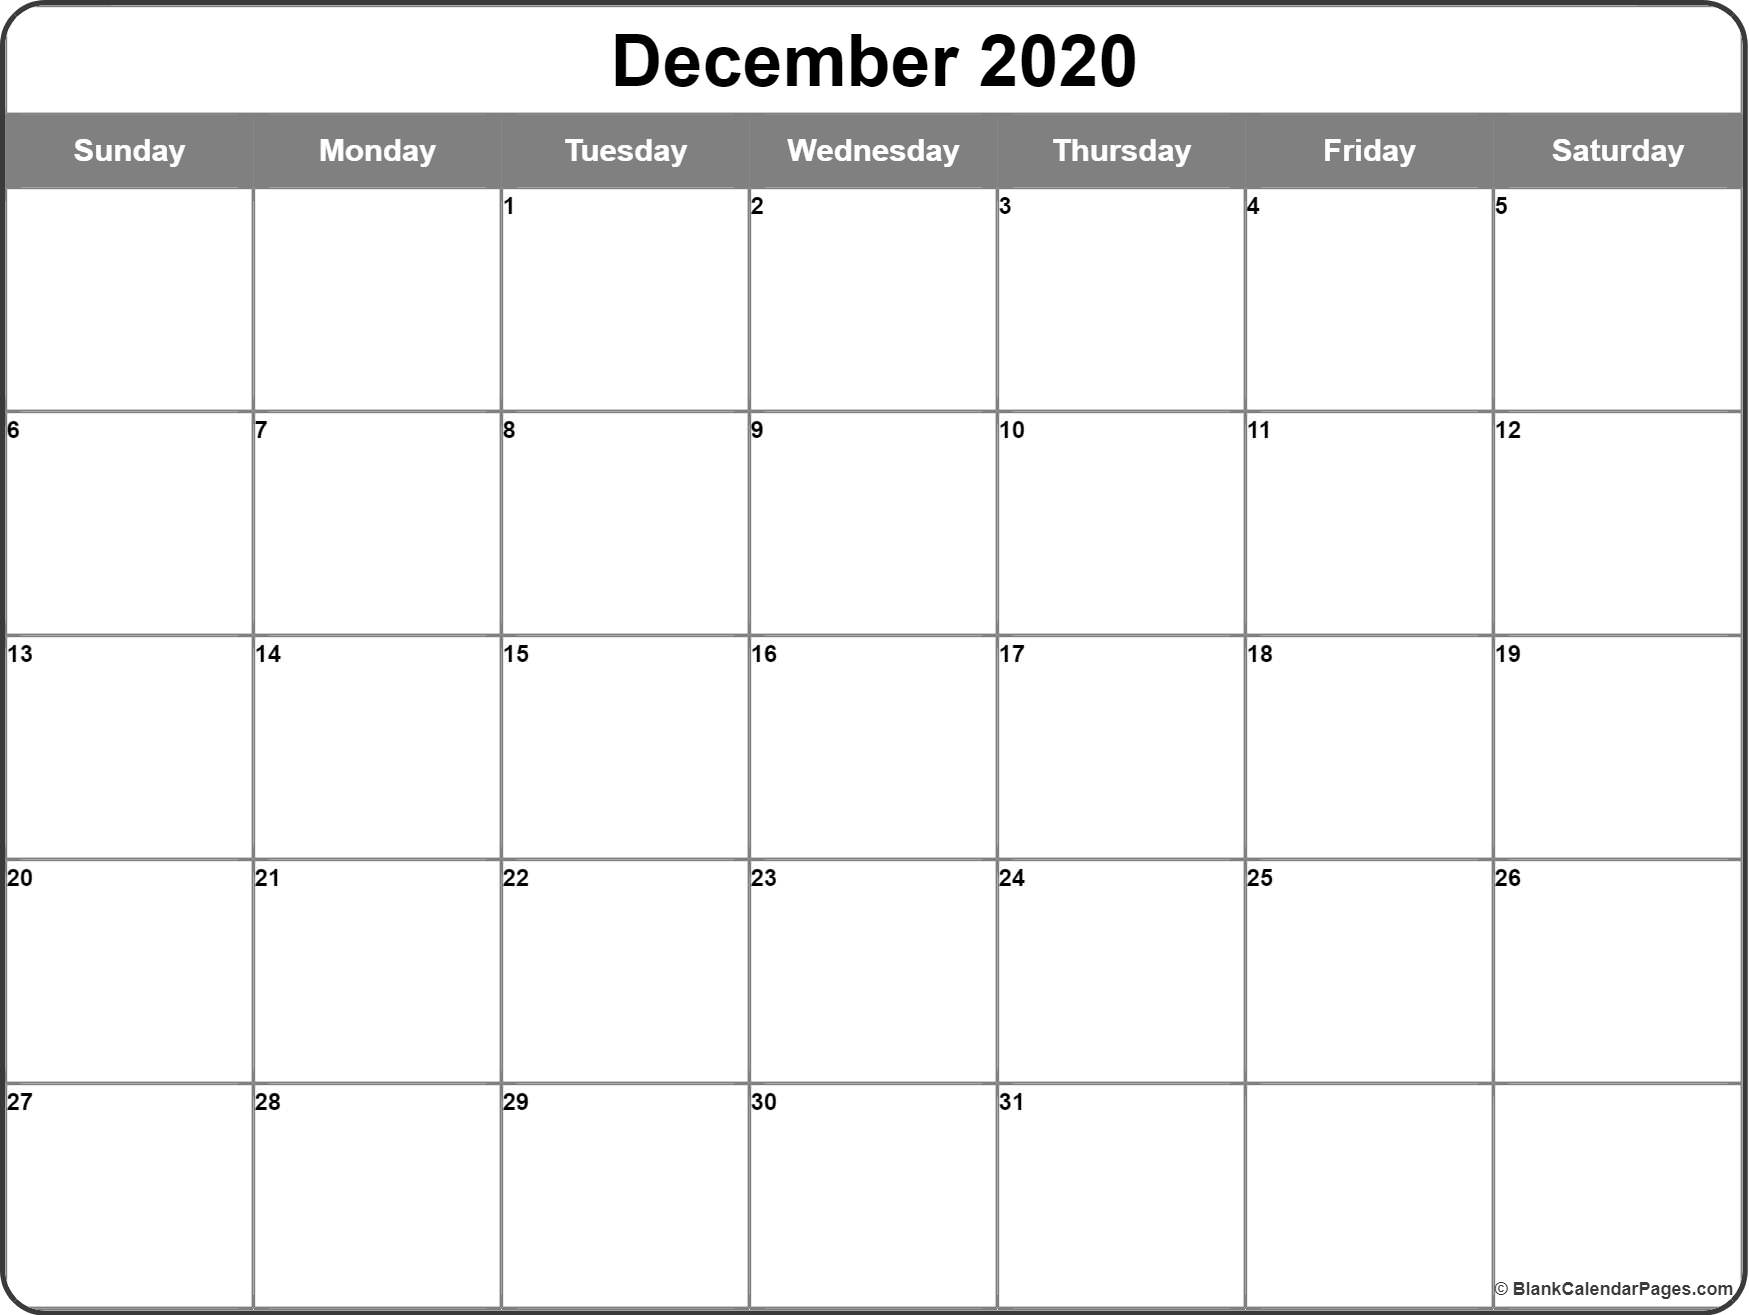 December 2020 Calendar | Free Printable Monthly Calendars intended for 2020 Printabl Calendar With Space To Write Free